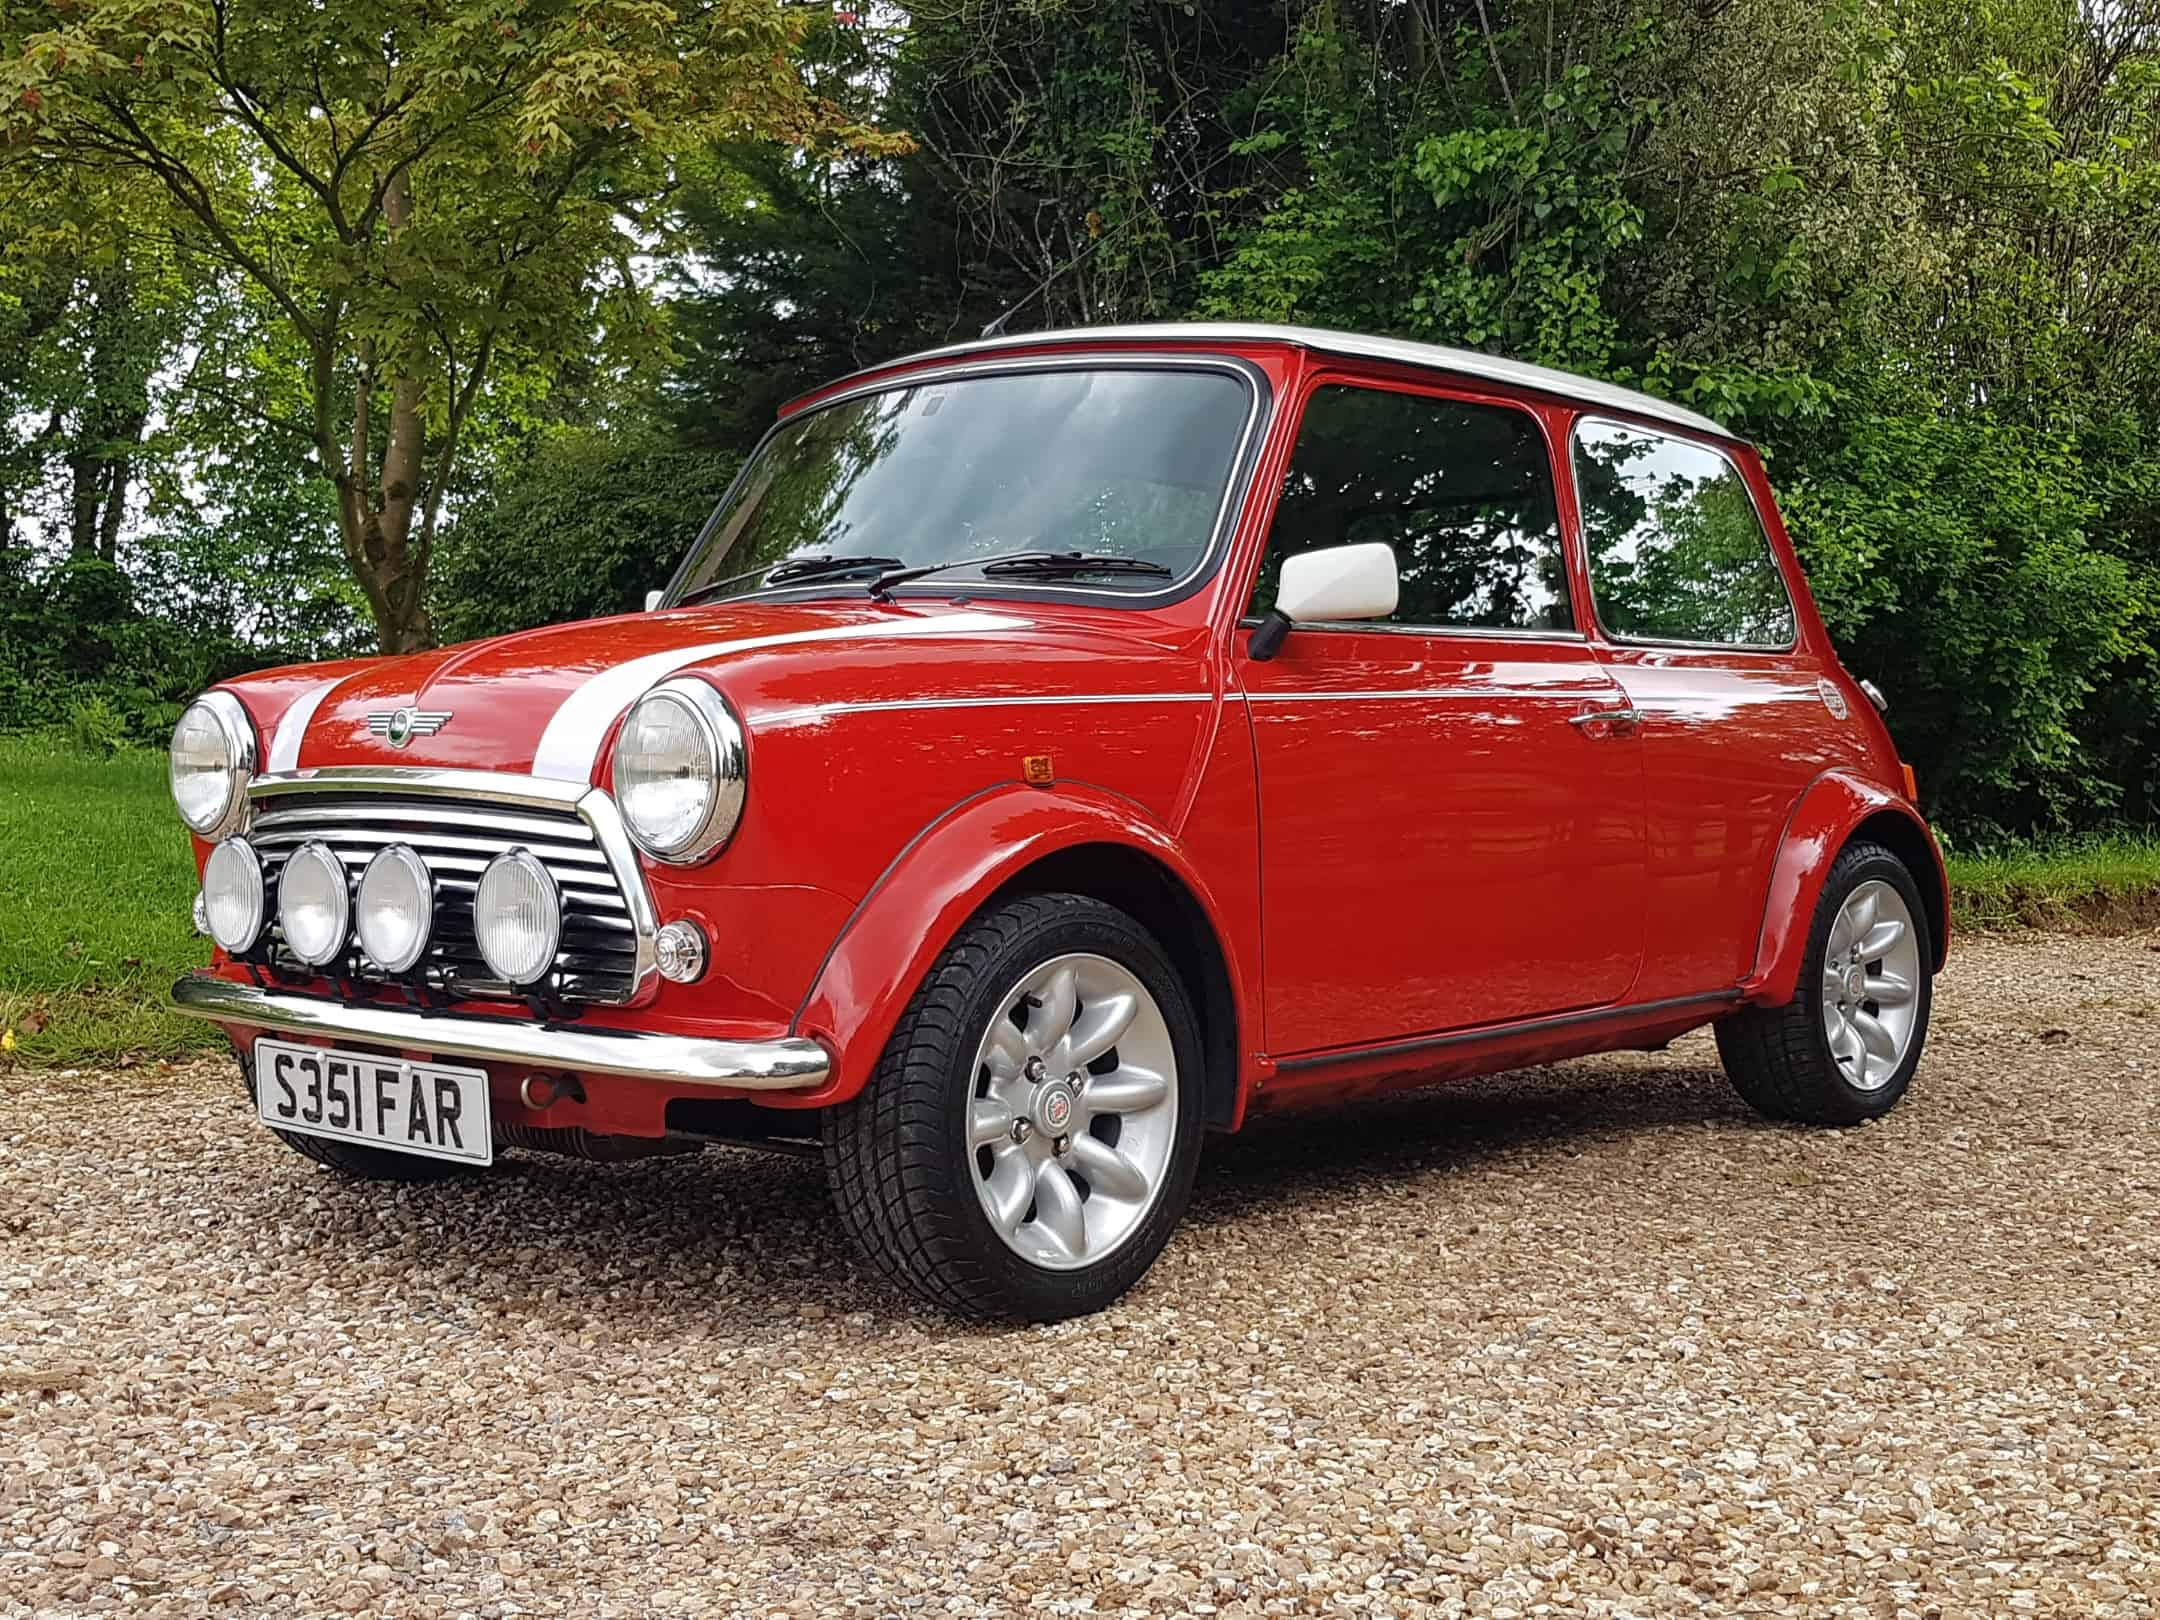 ** NOW SOLD ** 1998 Rover Mini Cooper Sport On Just 14360 Miles From New!!